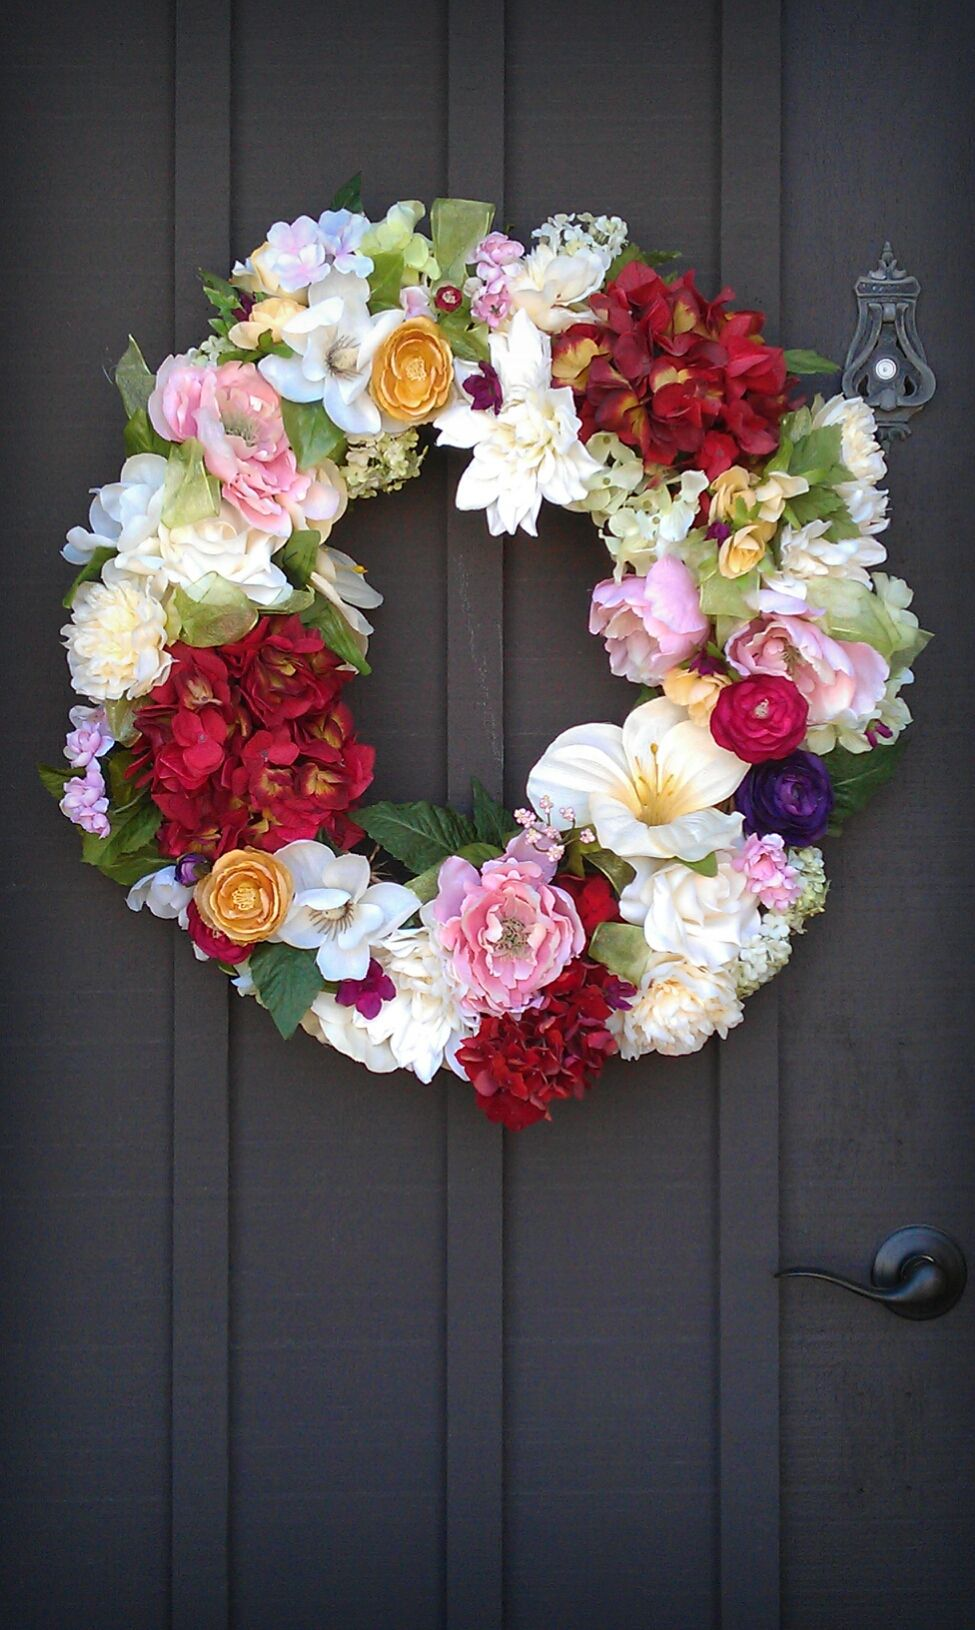 My Mothers Day Wreath For My Motheri Used The Flowers That We